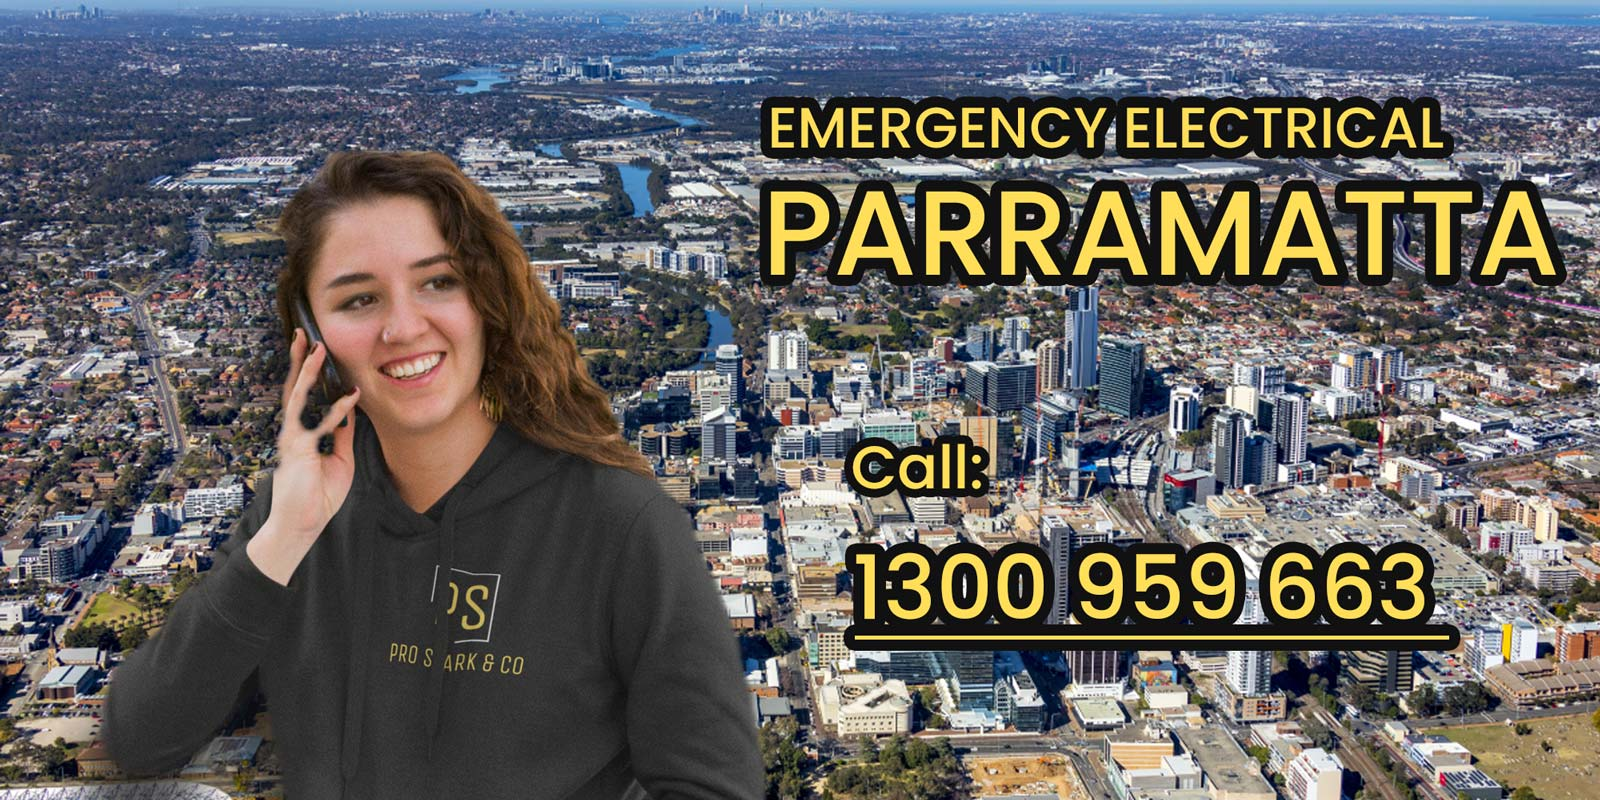 Emergency Electrician Parramatta NSW | 24/7 Response